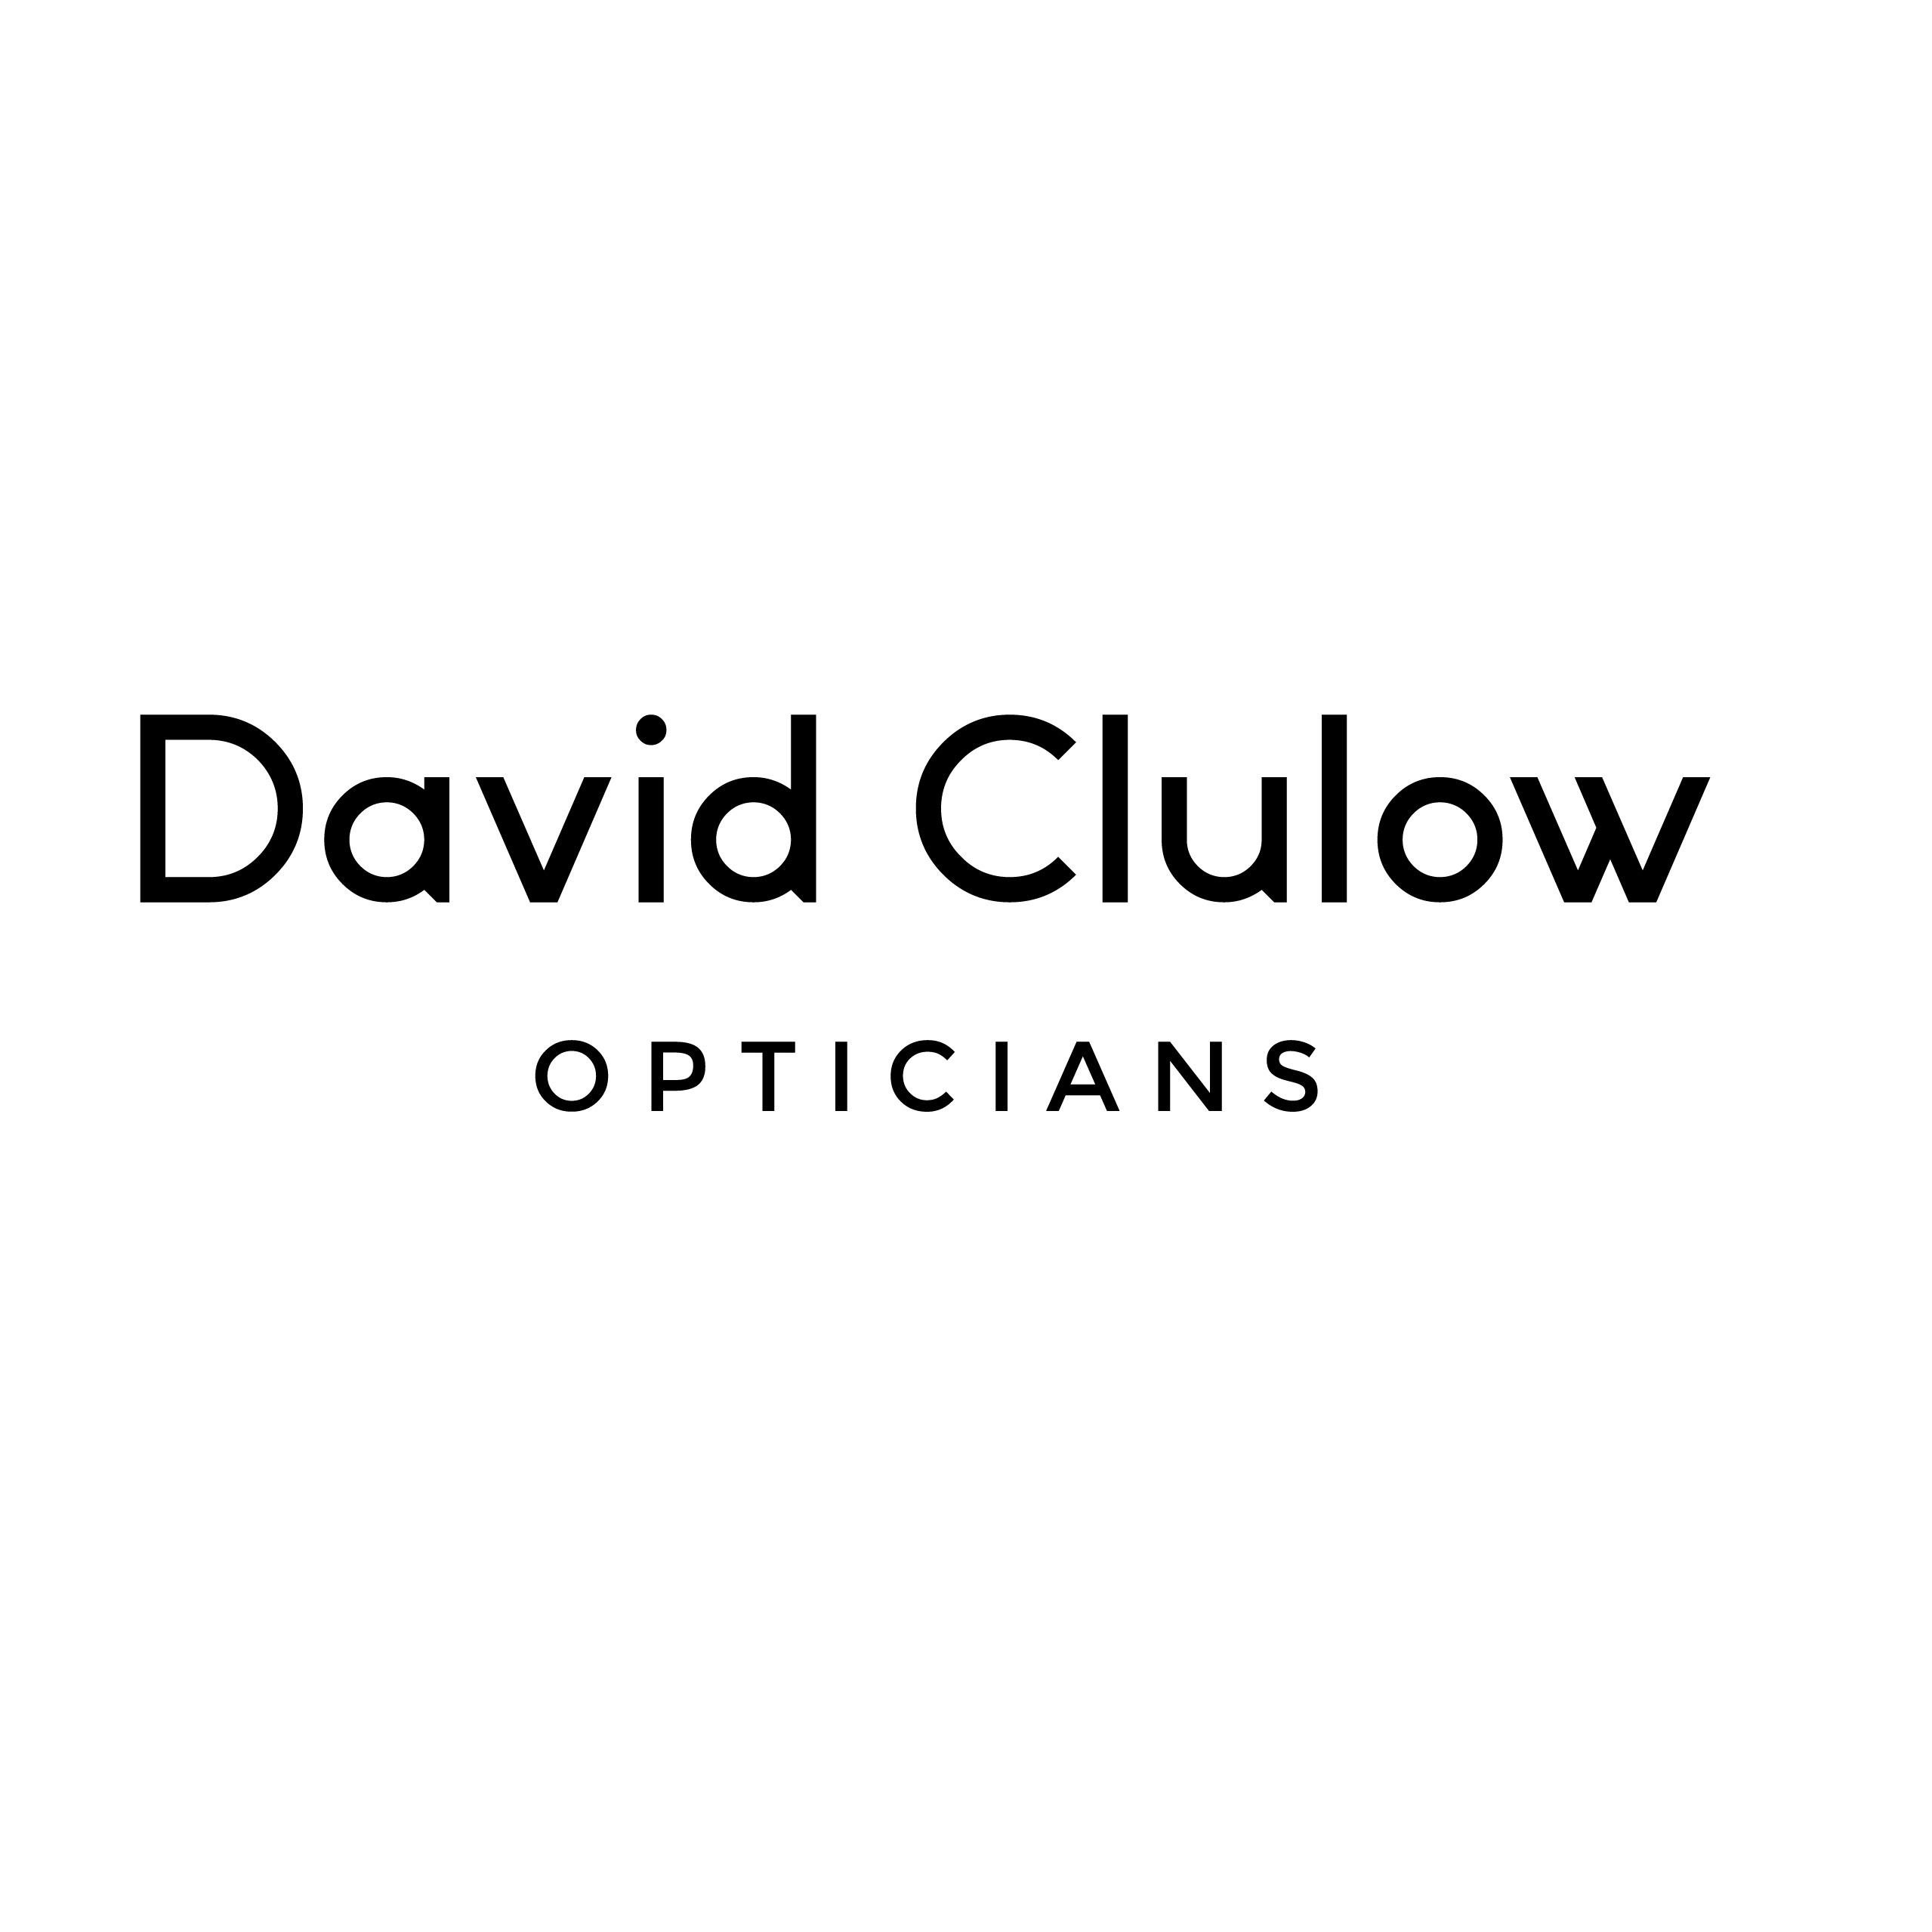 David Clulow Opticians Essex 020 8502 5259